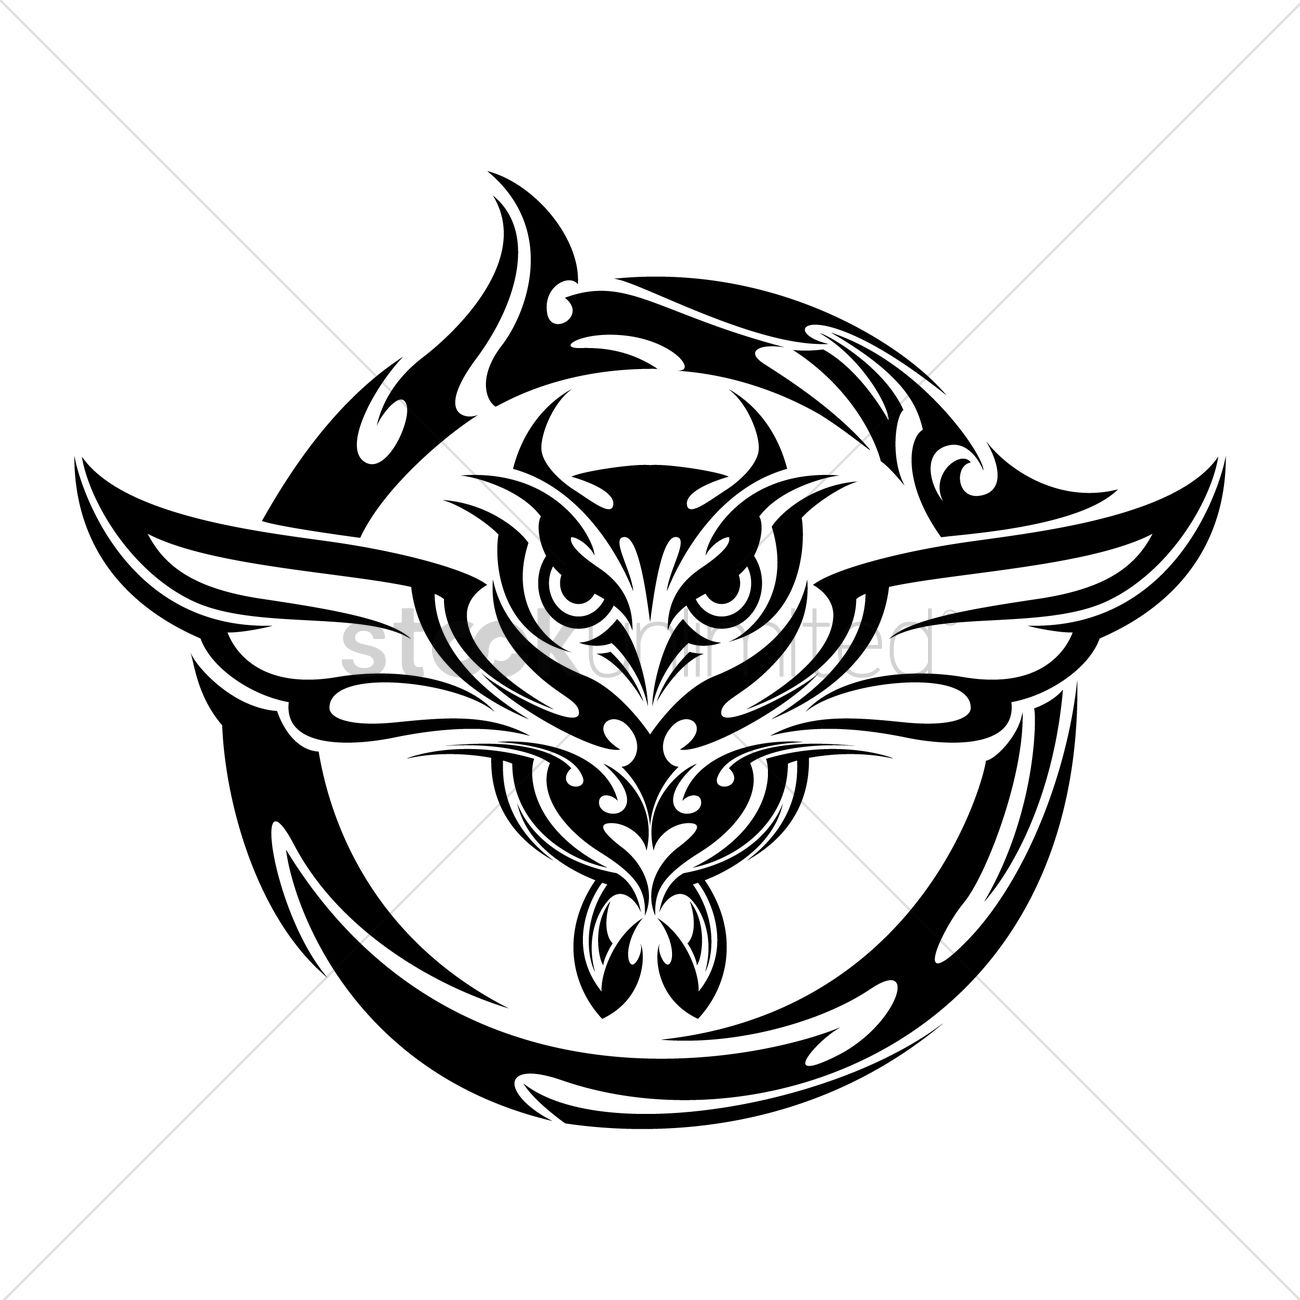 Owl Tattoo Vector Image 1441387 Stockunlimited